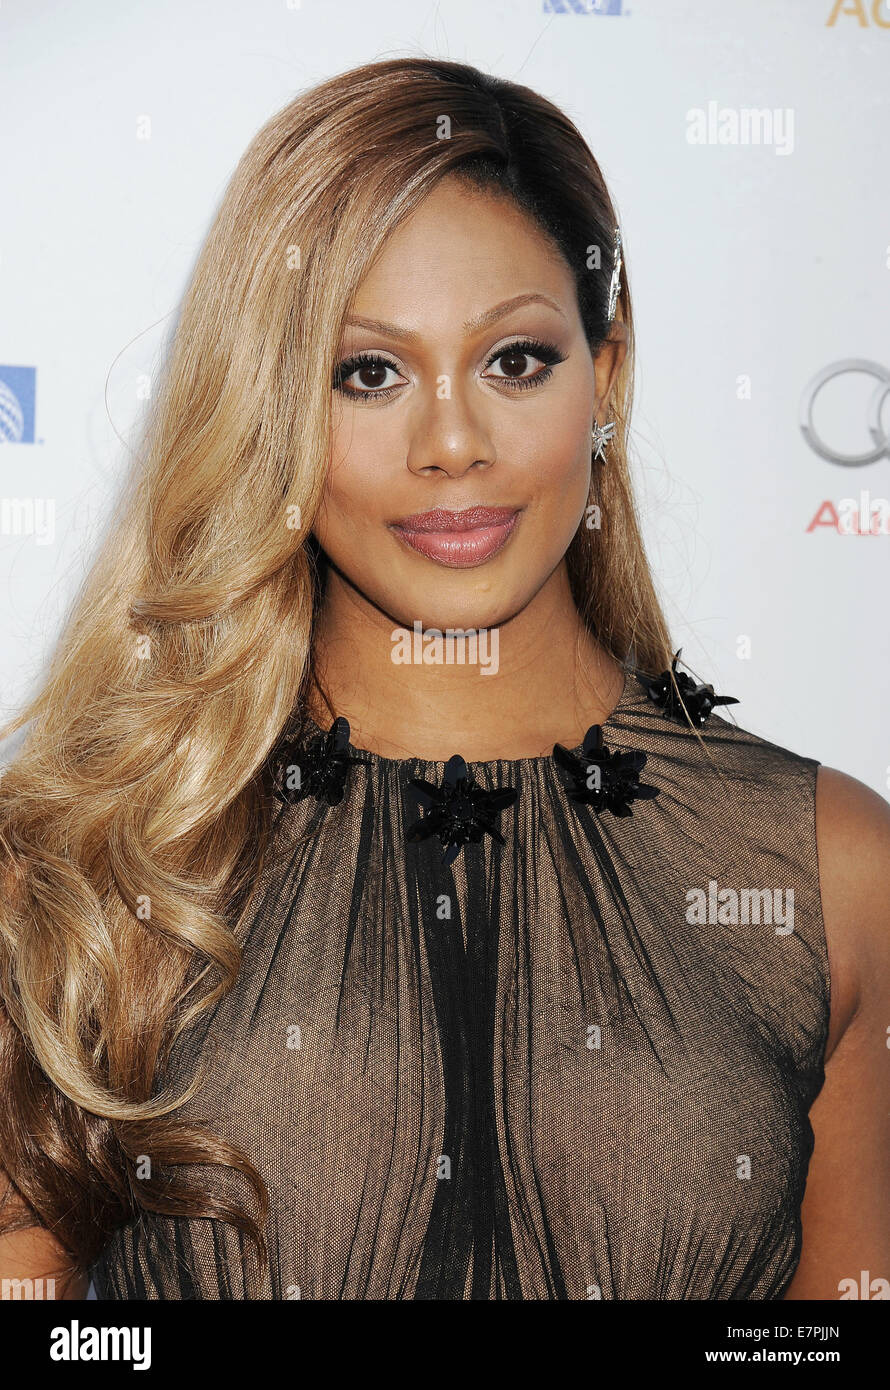 Sexy Pictures Laverne Cox naked photo 2017